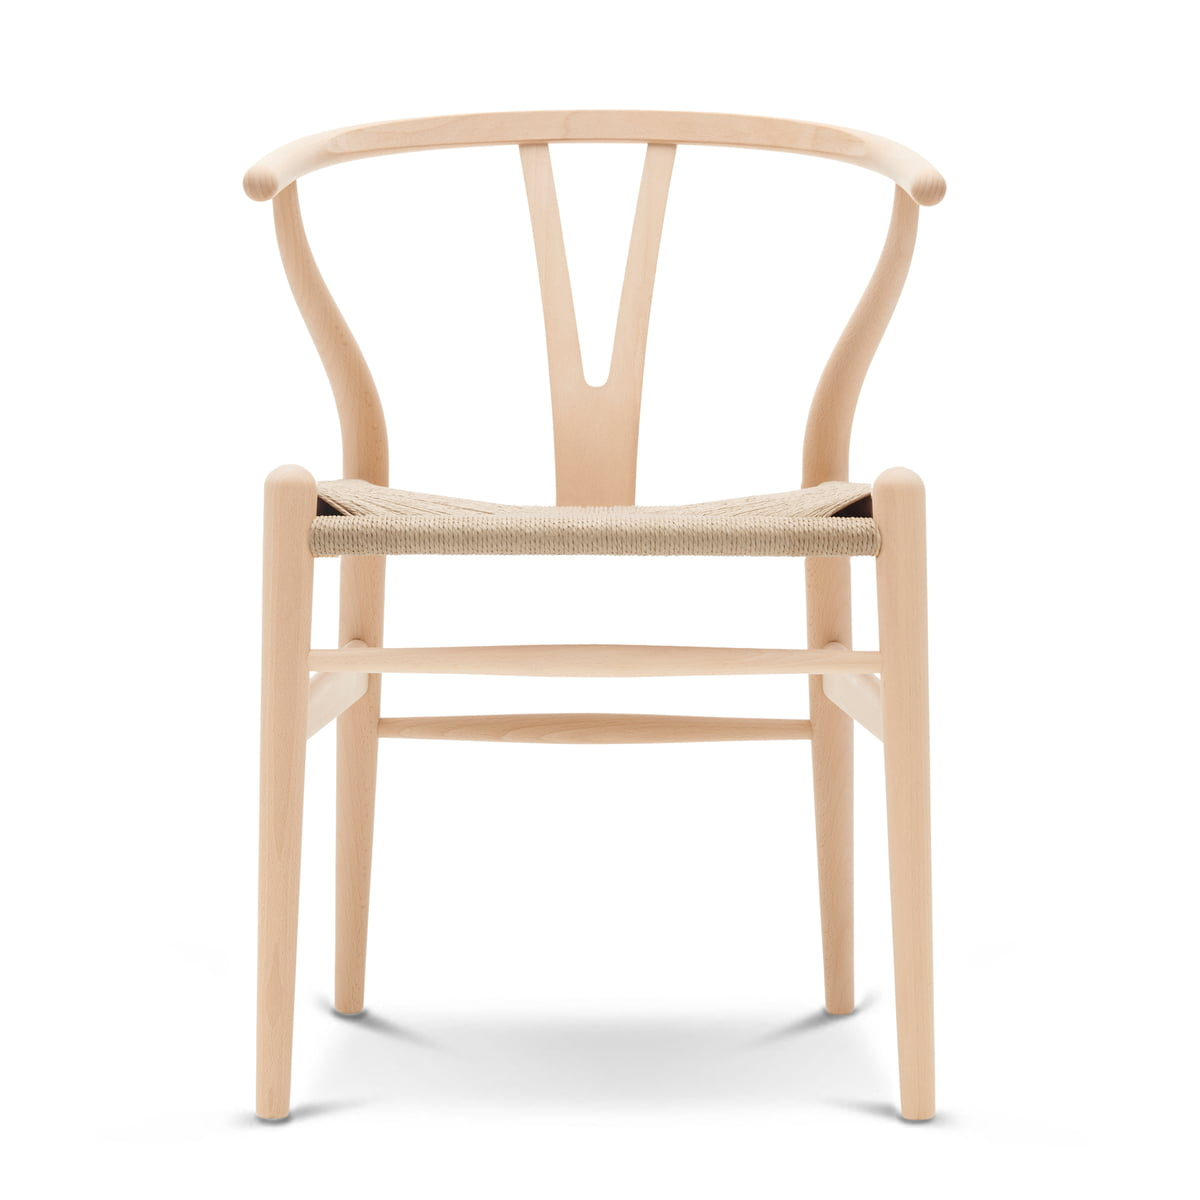 The ch24 wishbone chair by carl hansen in soaped beech natural wicker